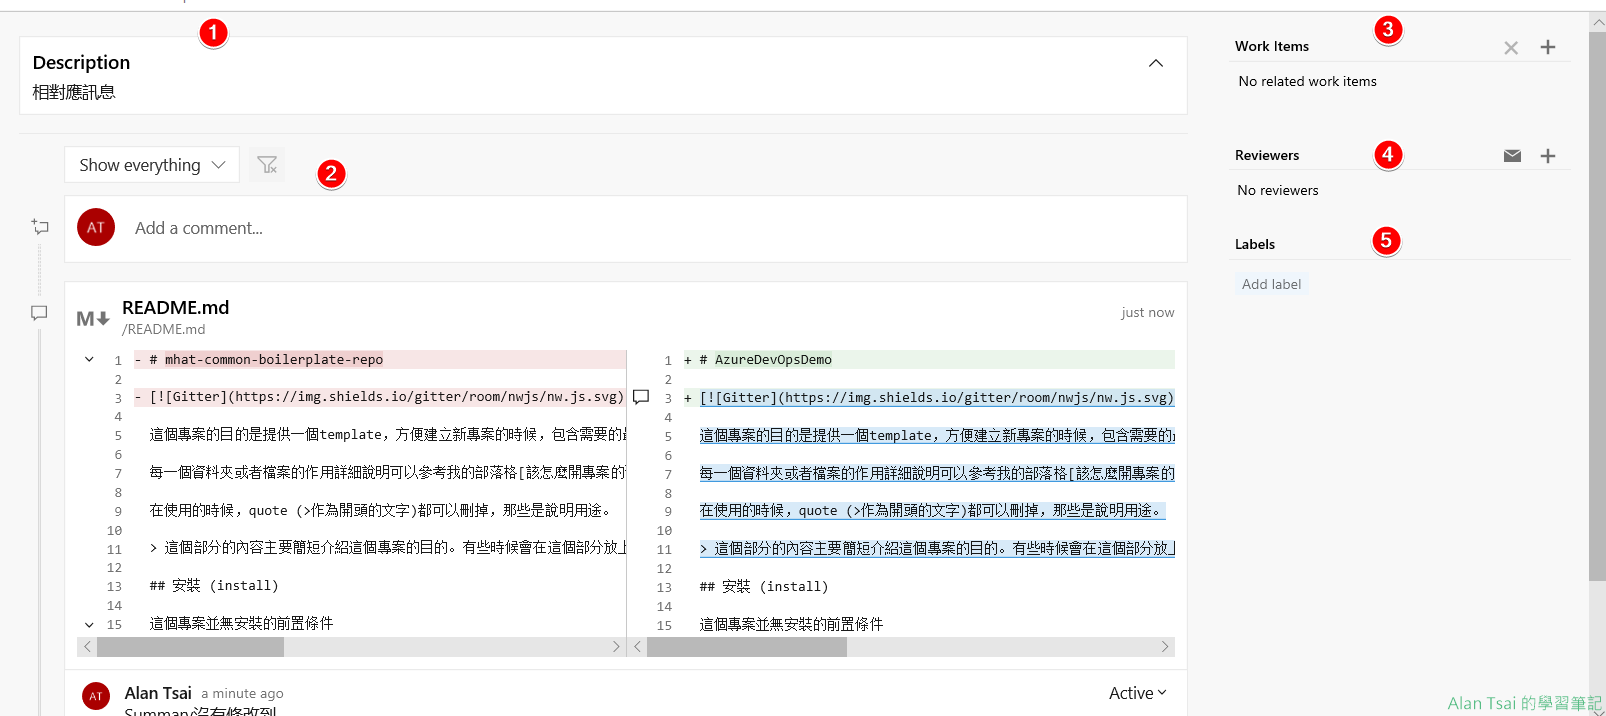 ApplicationFrameHost_2019-05-19_18-47-47.png